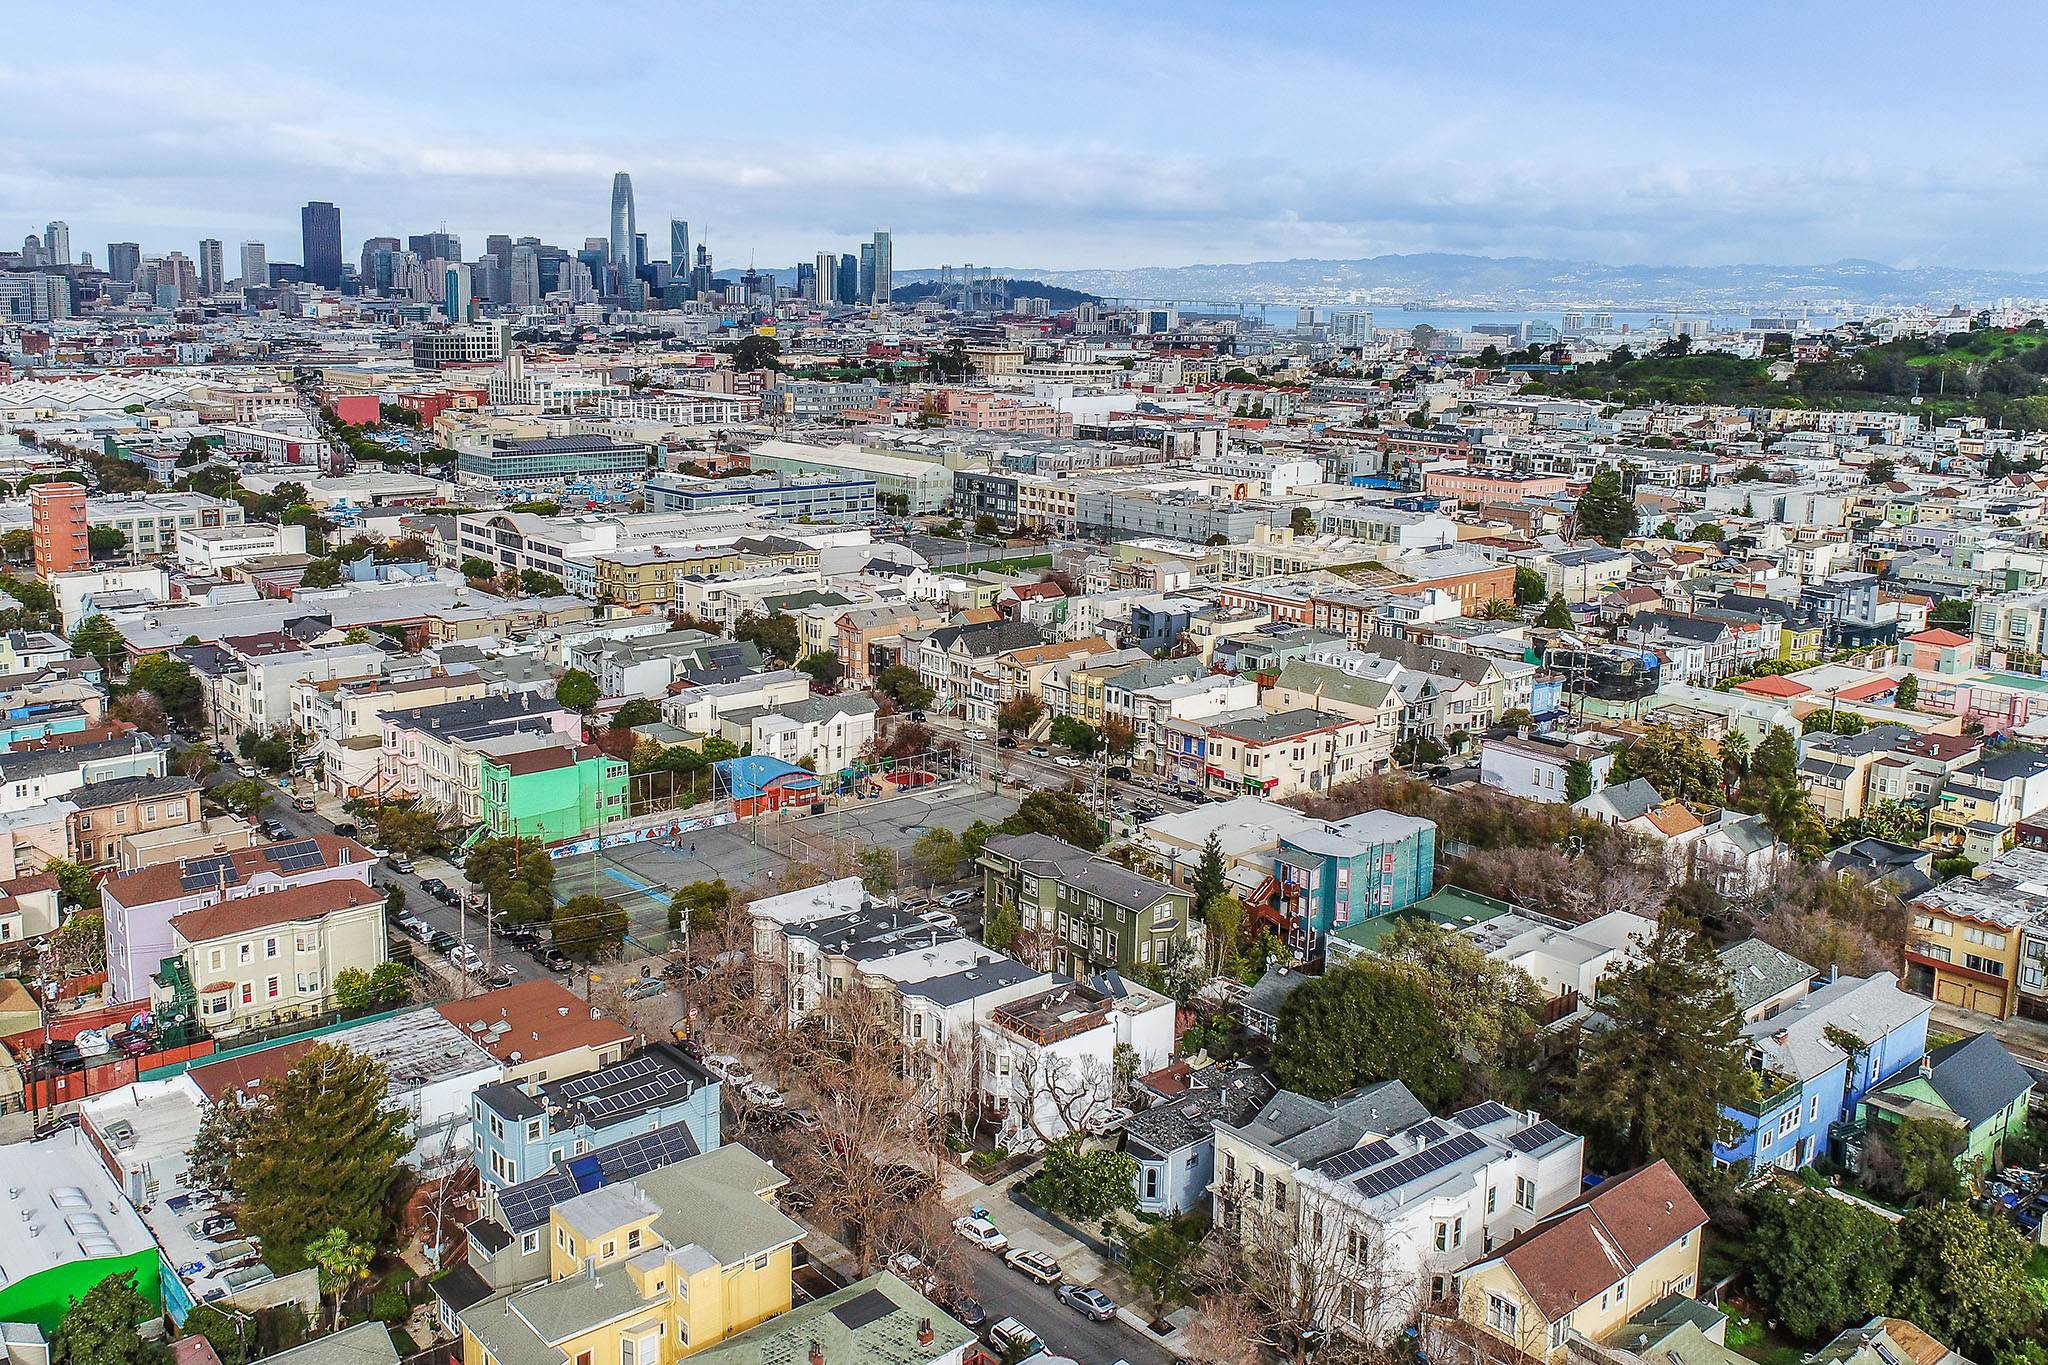 Aerial Photo of San Francisco